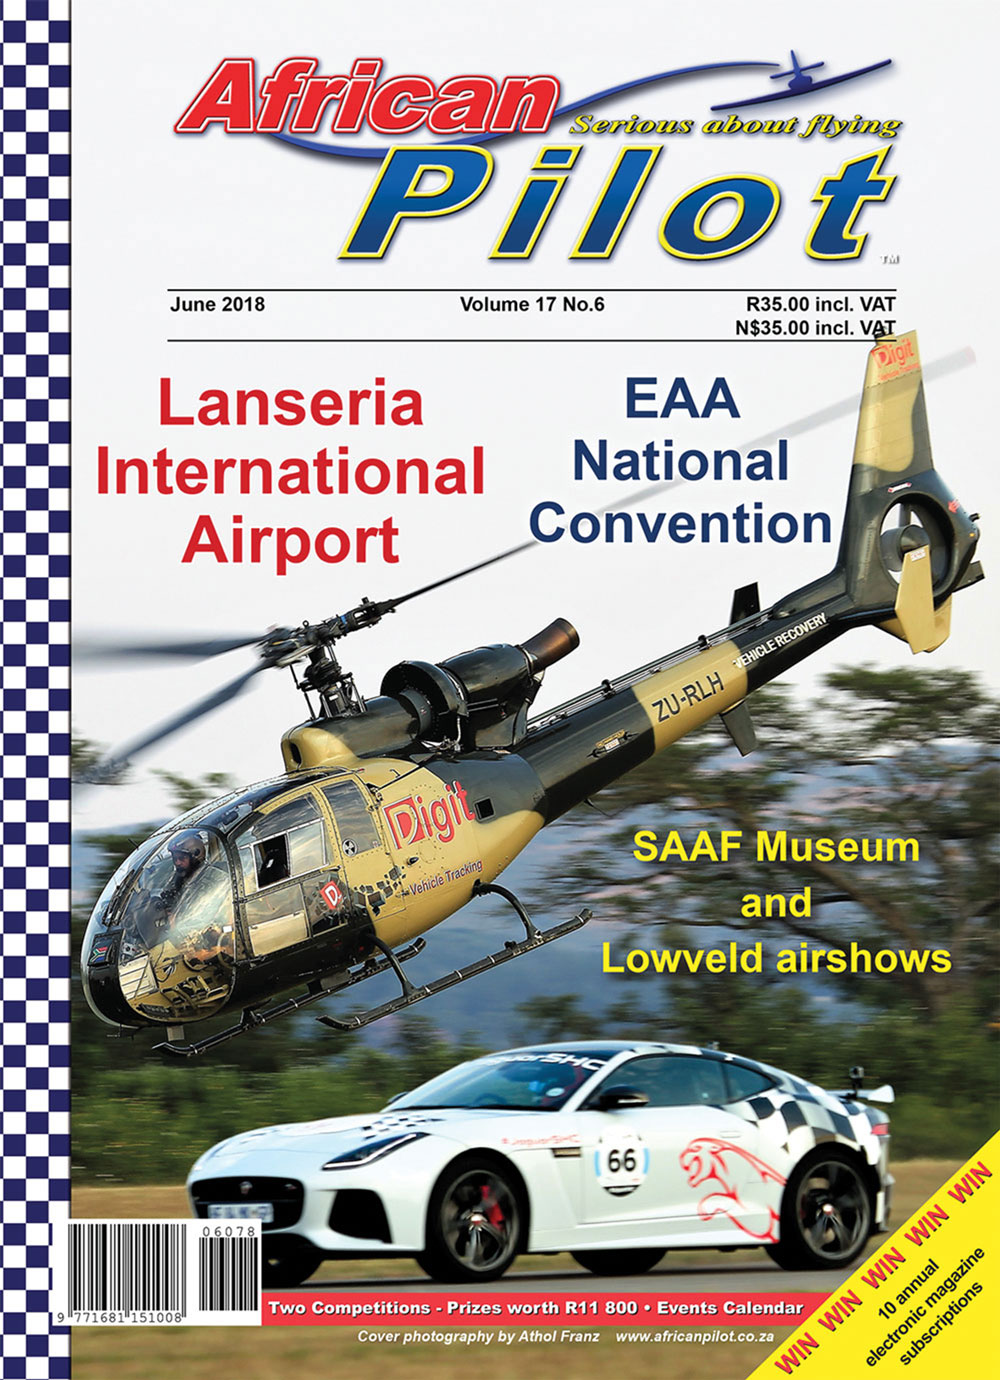 African Pilot magazine - June 2018 cover